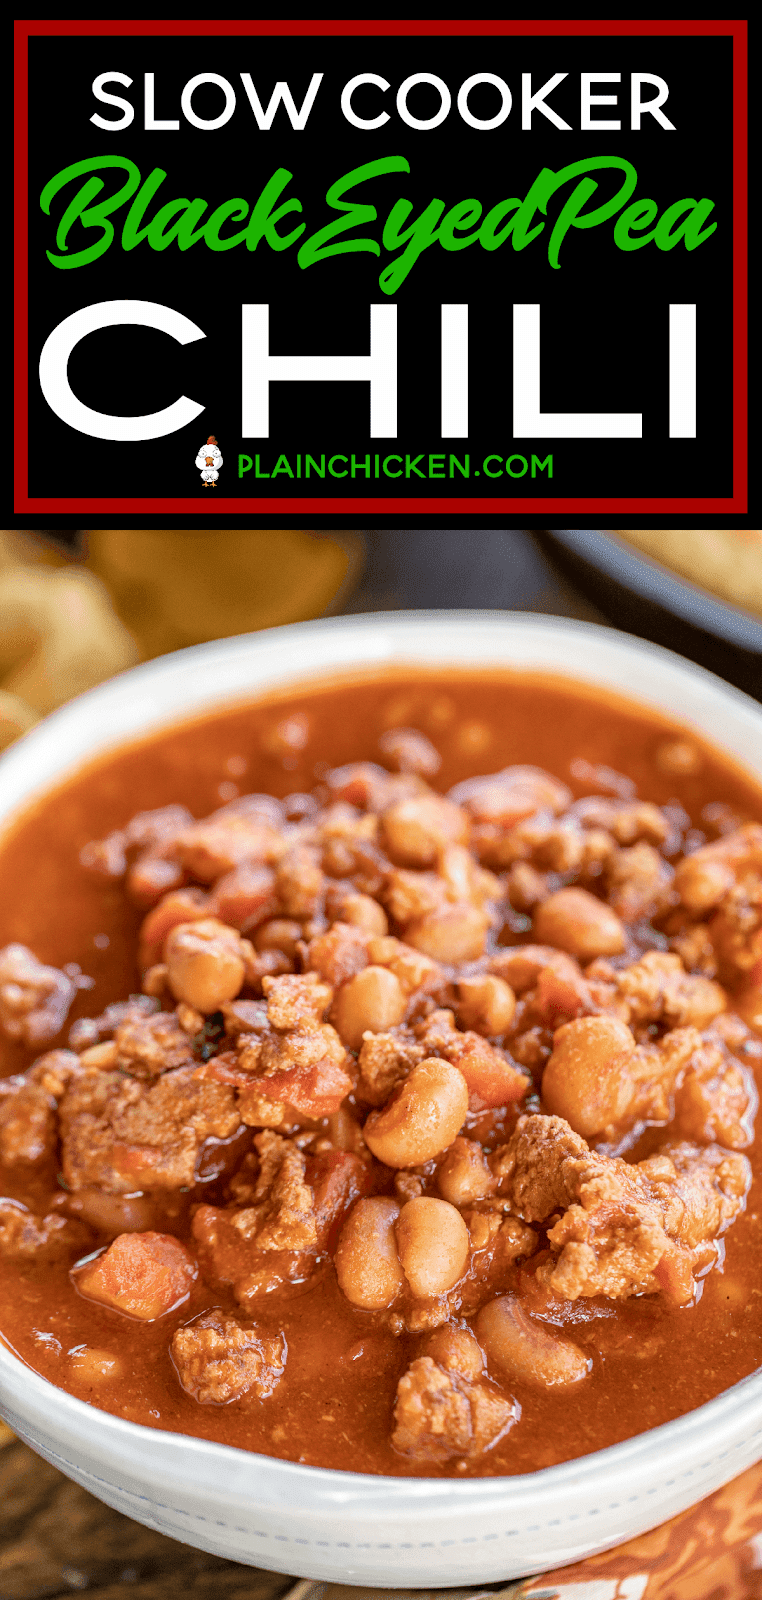 Black Eyed Pea Chili - seriously delicious!! So simple and it tastes great! All you need is come cornbread and dinner is done! Ground beef, sausage, onion, garlic, tomato paste, diced tomatoes, Rotel, beef broth, cumin, chili powder, paprika, red pepper and black eyed peas. Great for potlucks and parties. Leftovers are good on top of a baked potato! YUM! #chili #slowcooker #soup